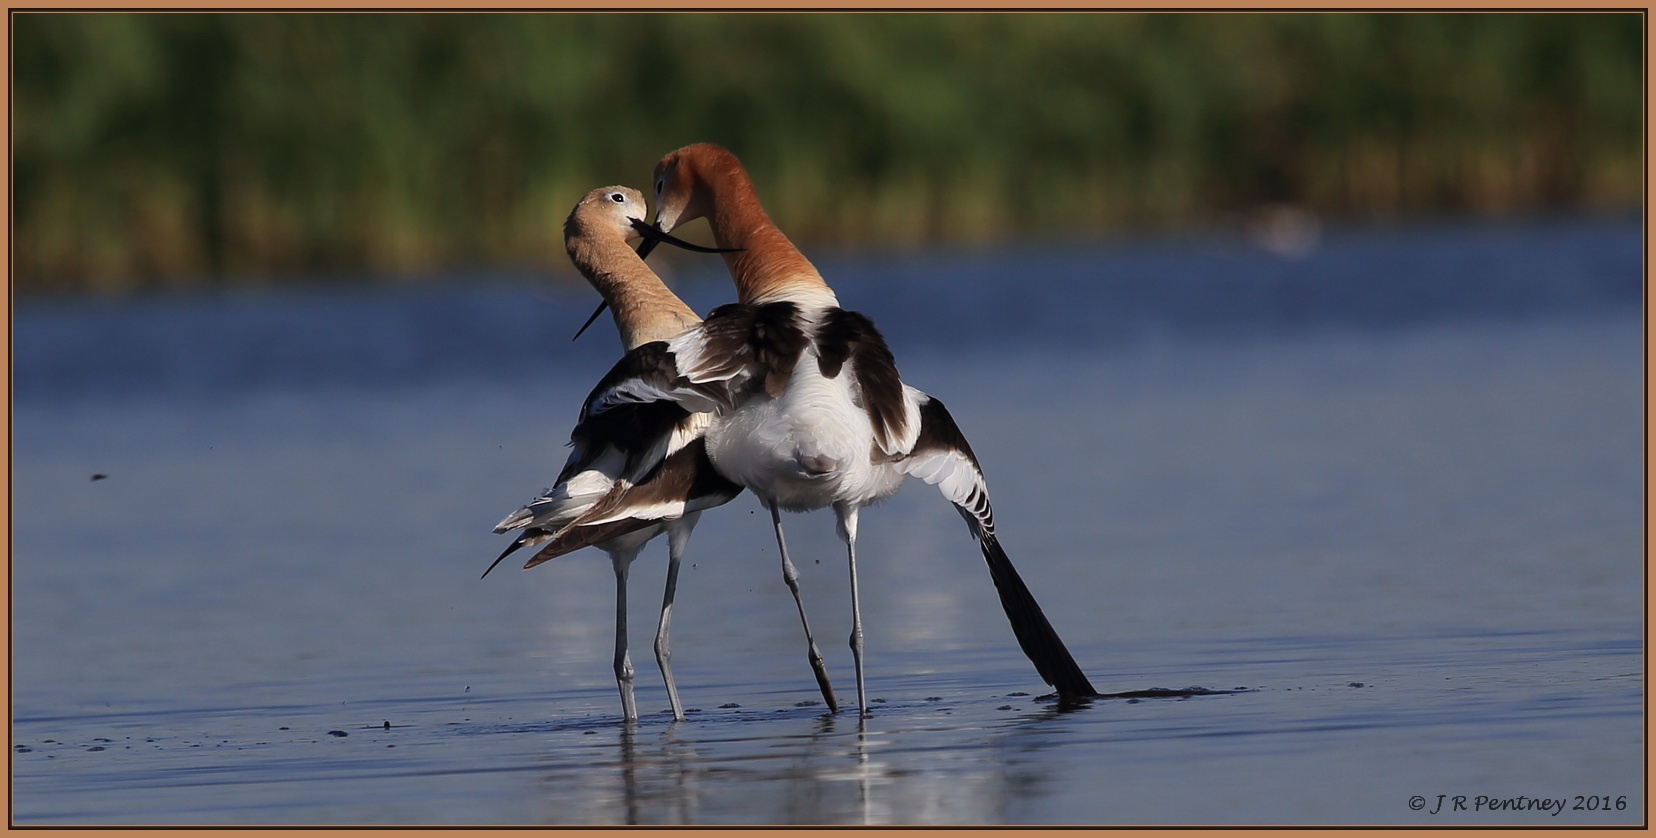 Part 4 of the American Avocet Mating series - Always kisses after by CrzyCnuk